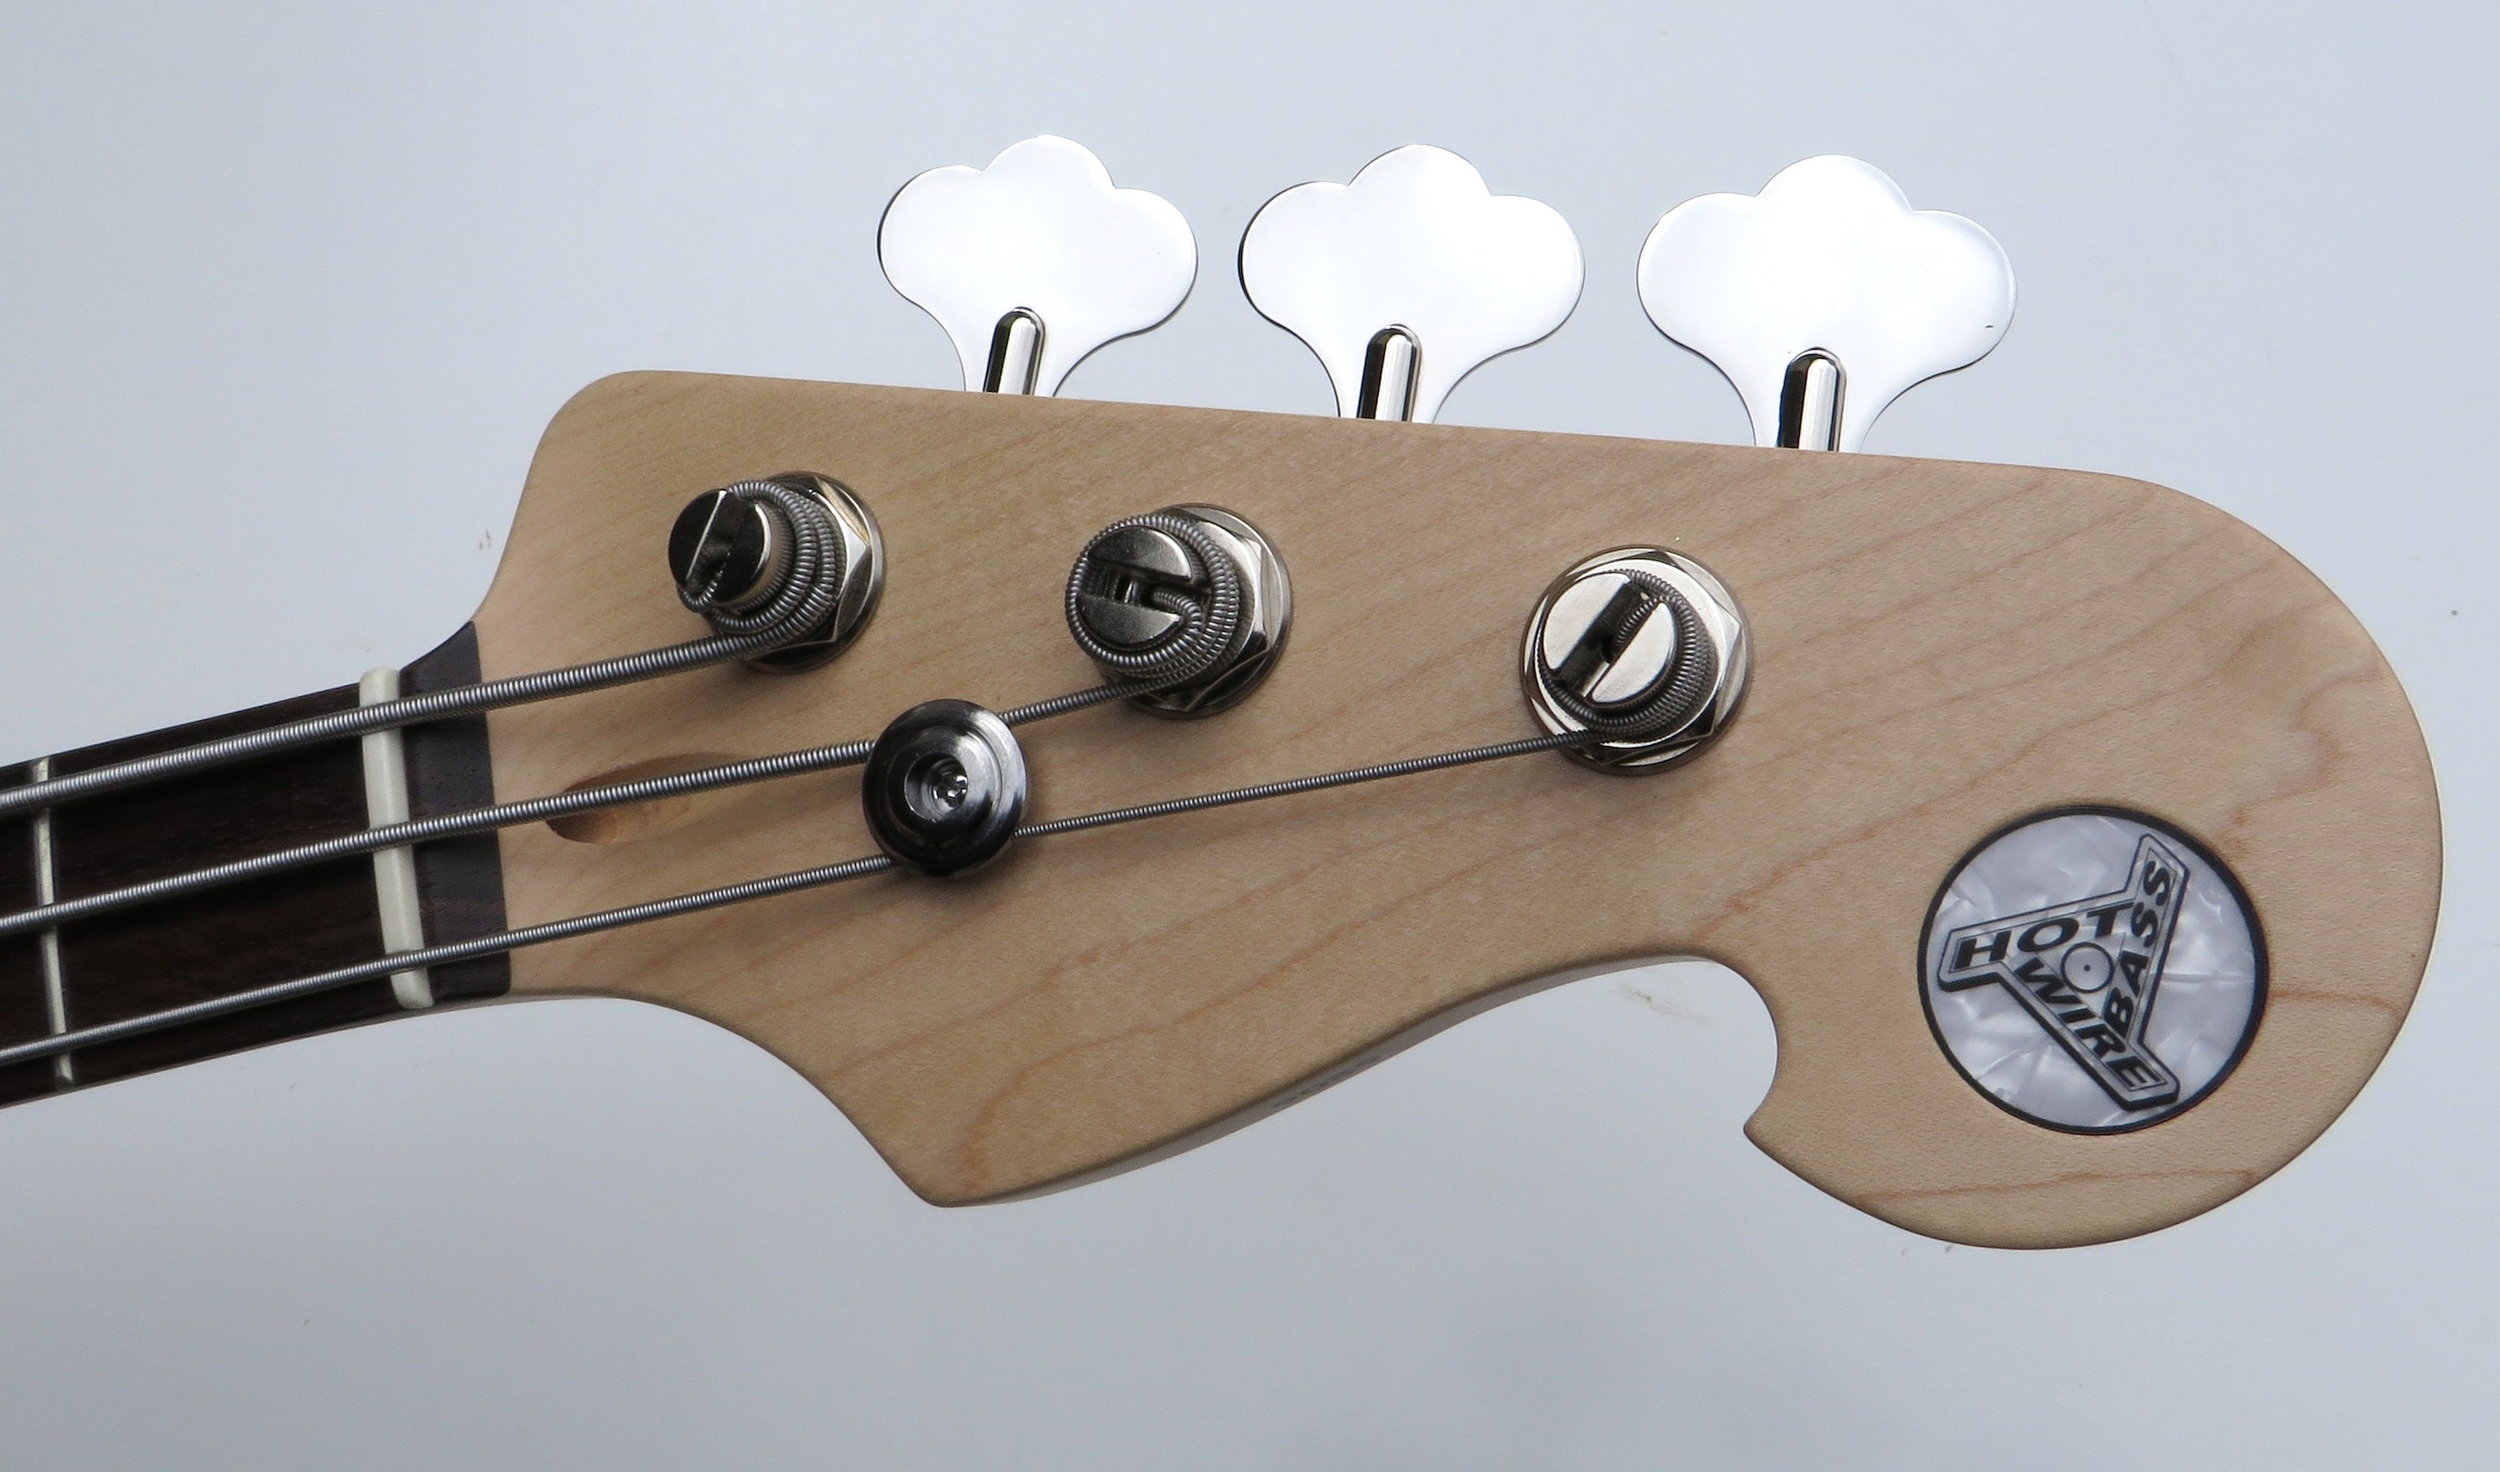 Three strings are enough? - We think so, too.